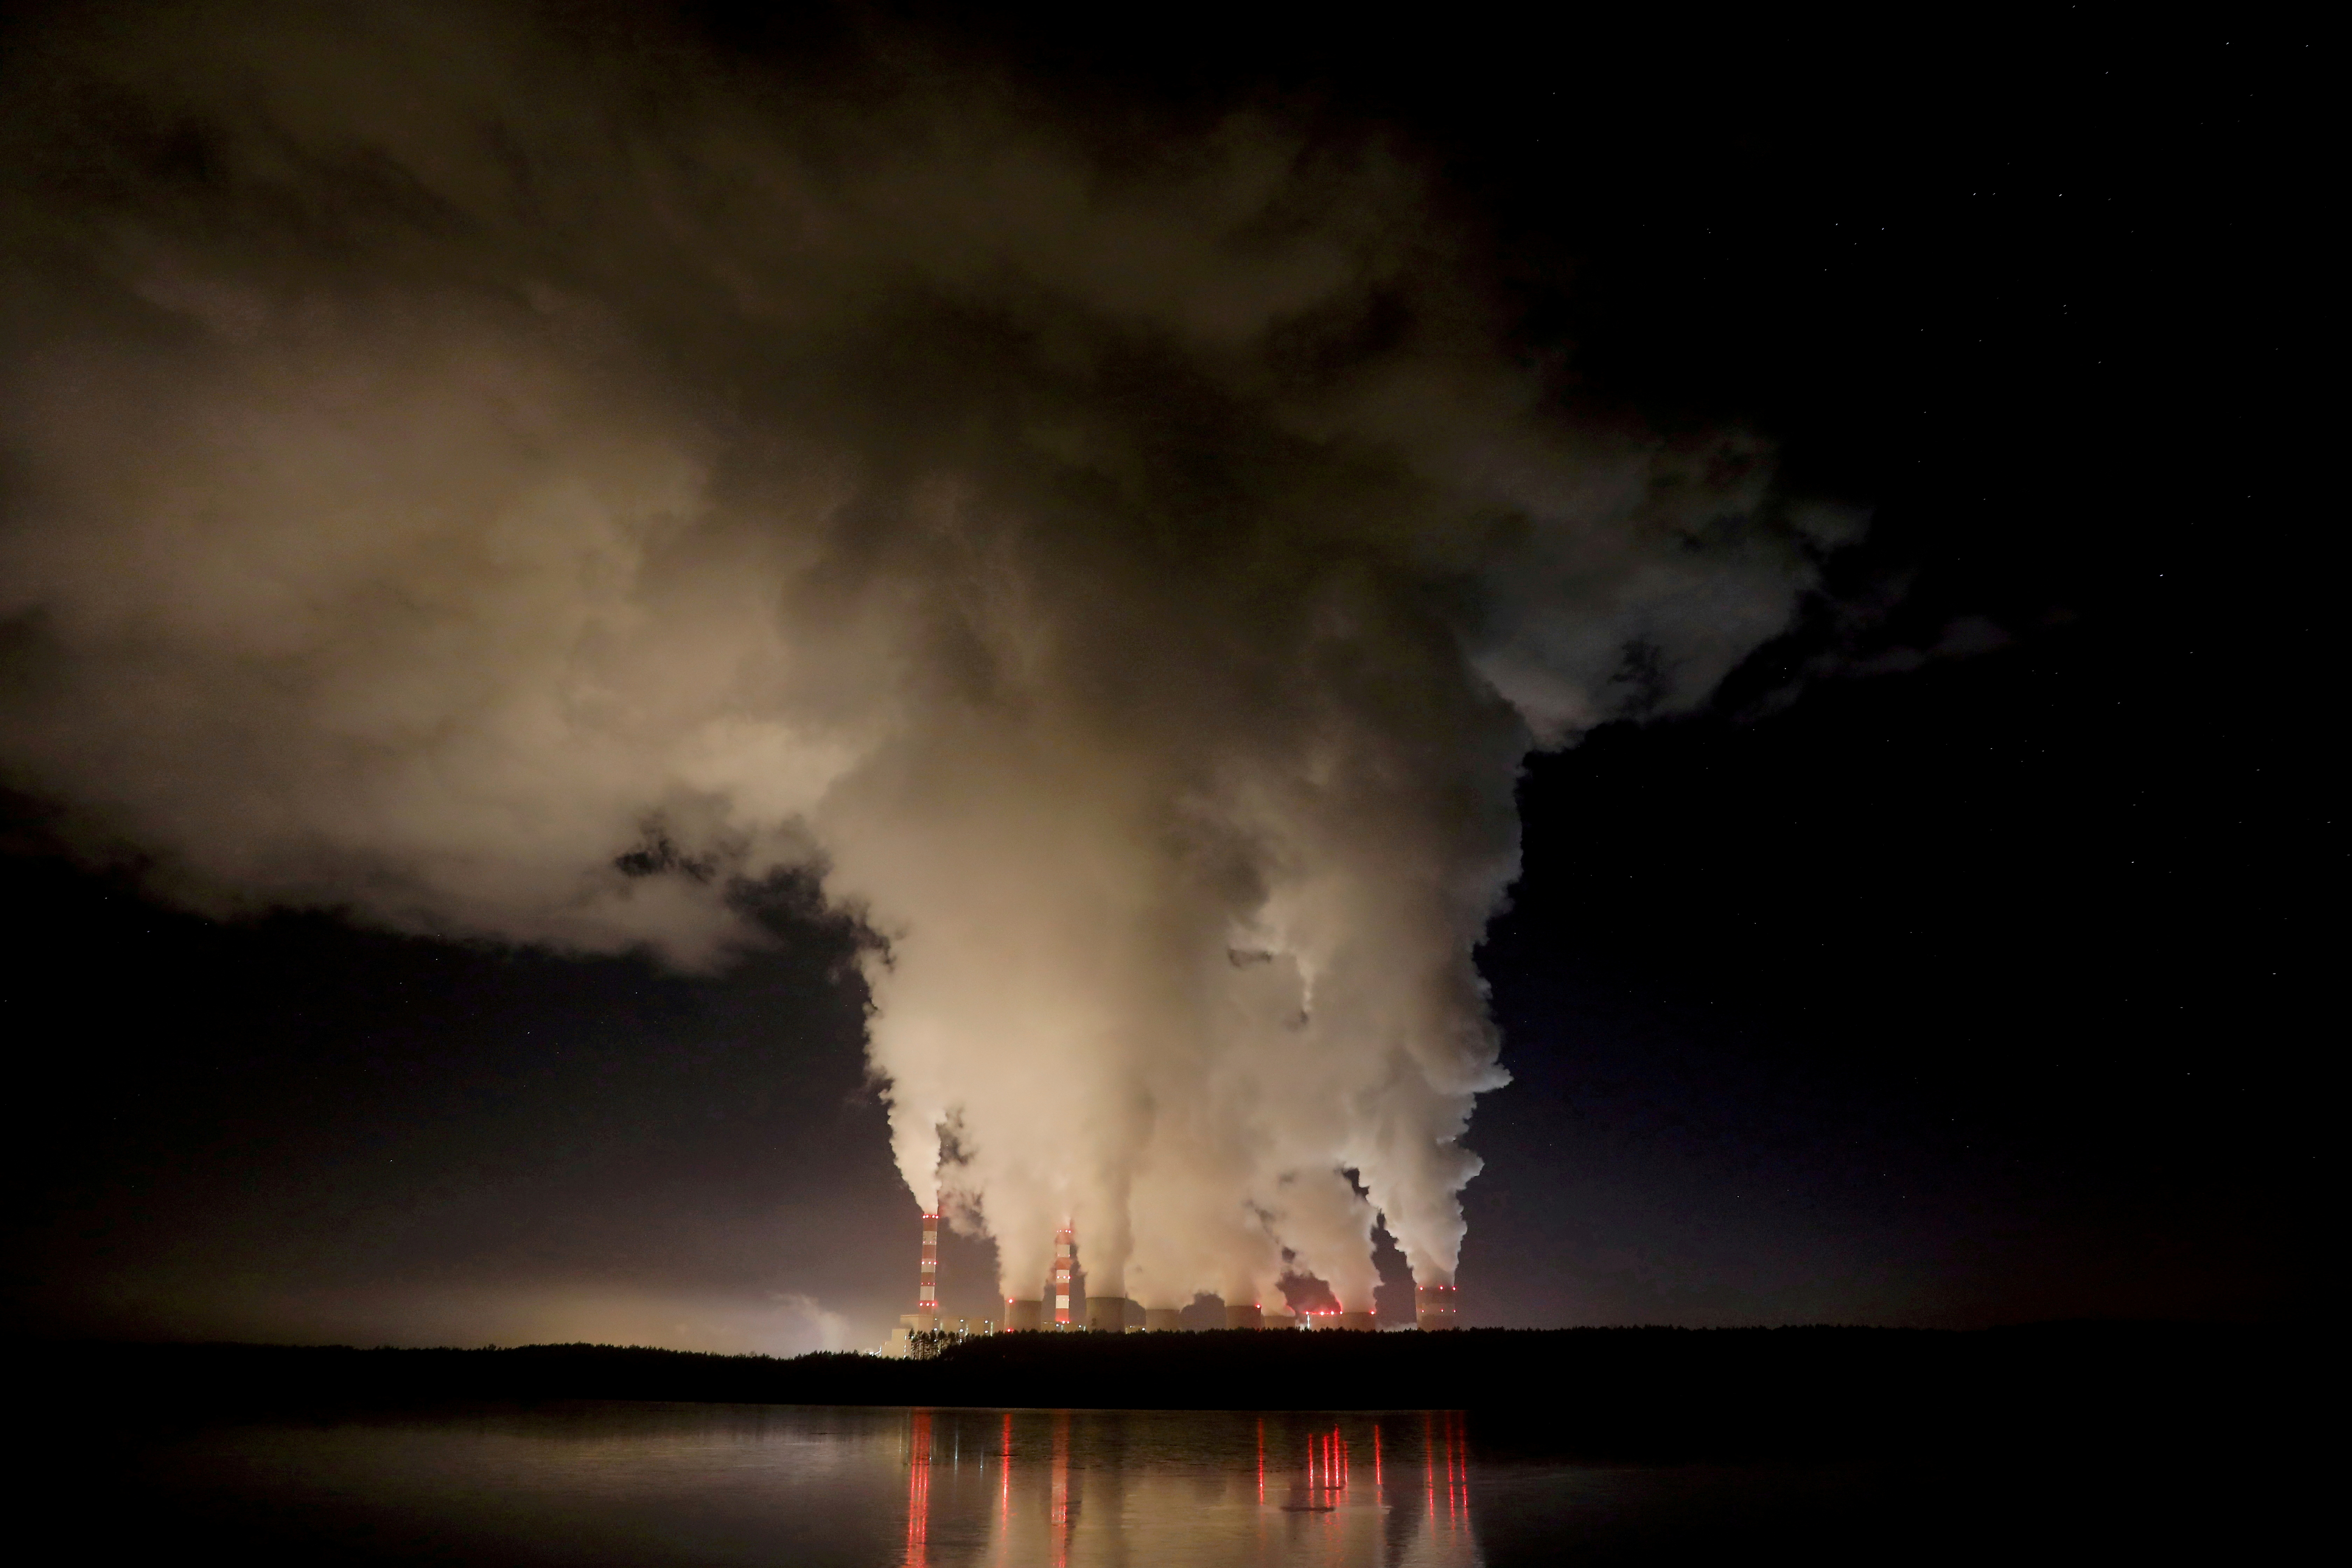 Smoke and steam billow from Belchatow Power Station, Europe's largest coal-fired power plant, operated by PGE Group, at night near Belchatow, Poland December 5, 2018. REUTERS/Kacper Pempel/File Photo